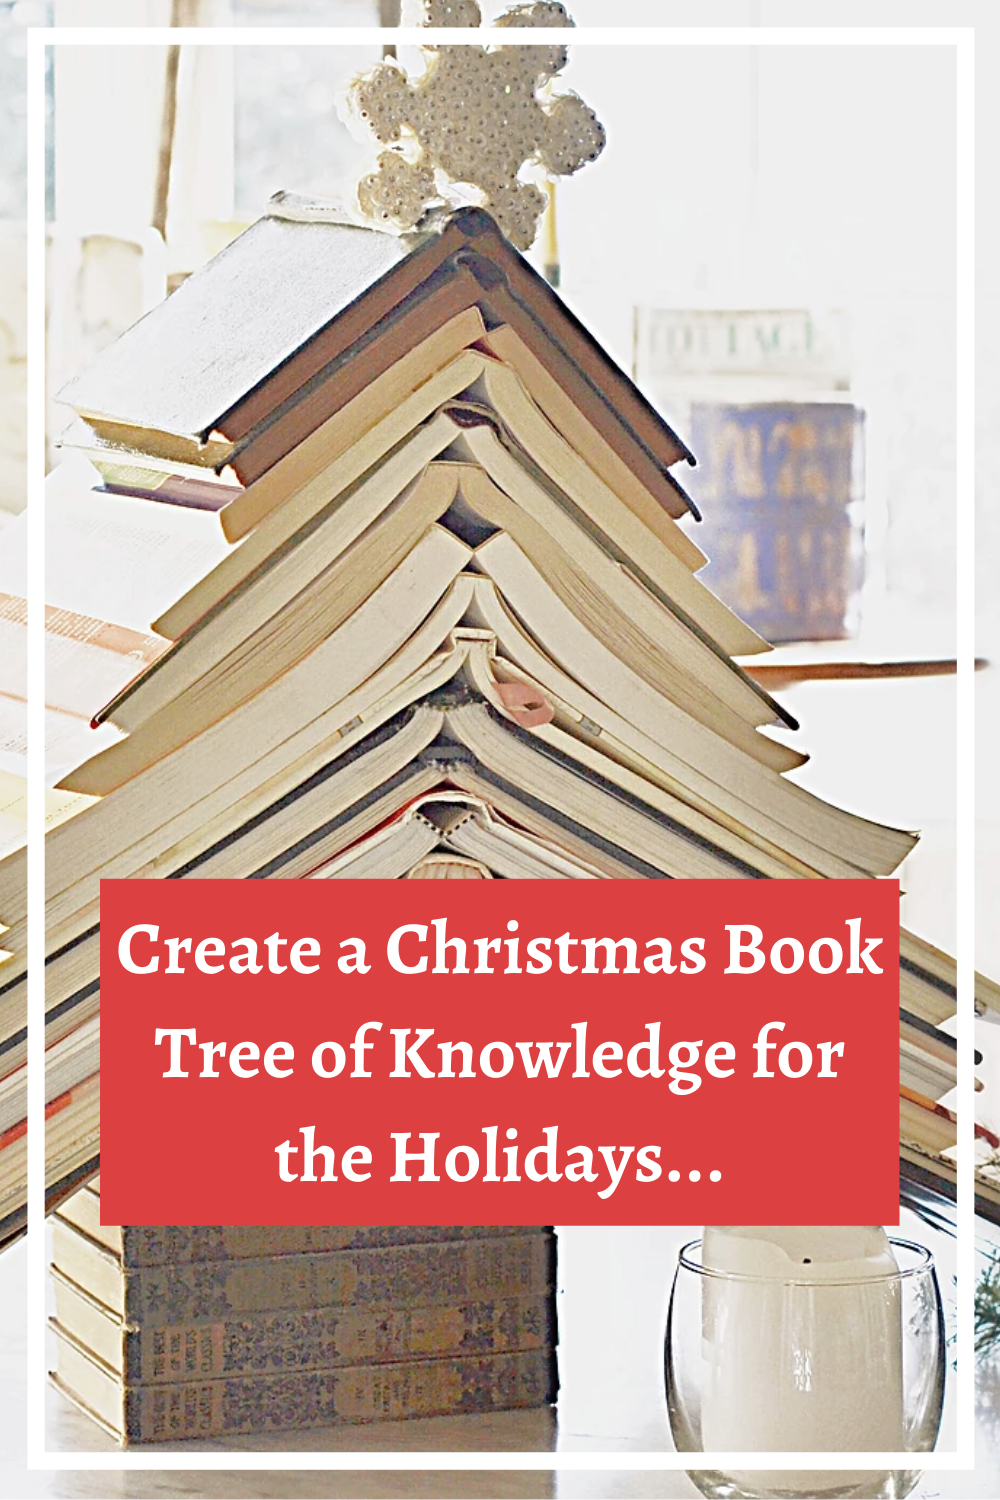 Create a Christmas Book Tree of Knowledge for the Holidays!